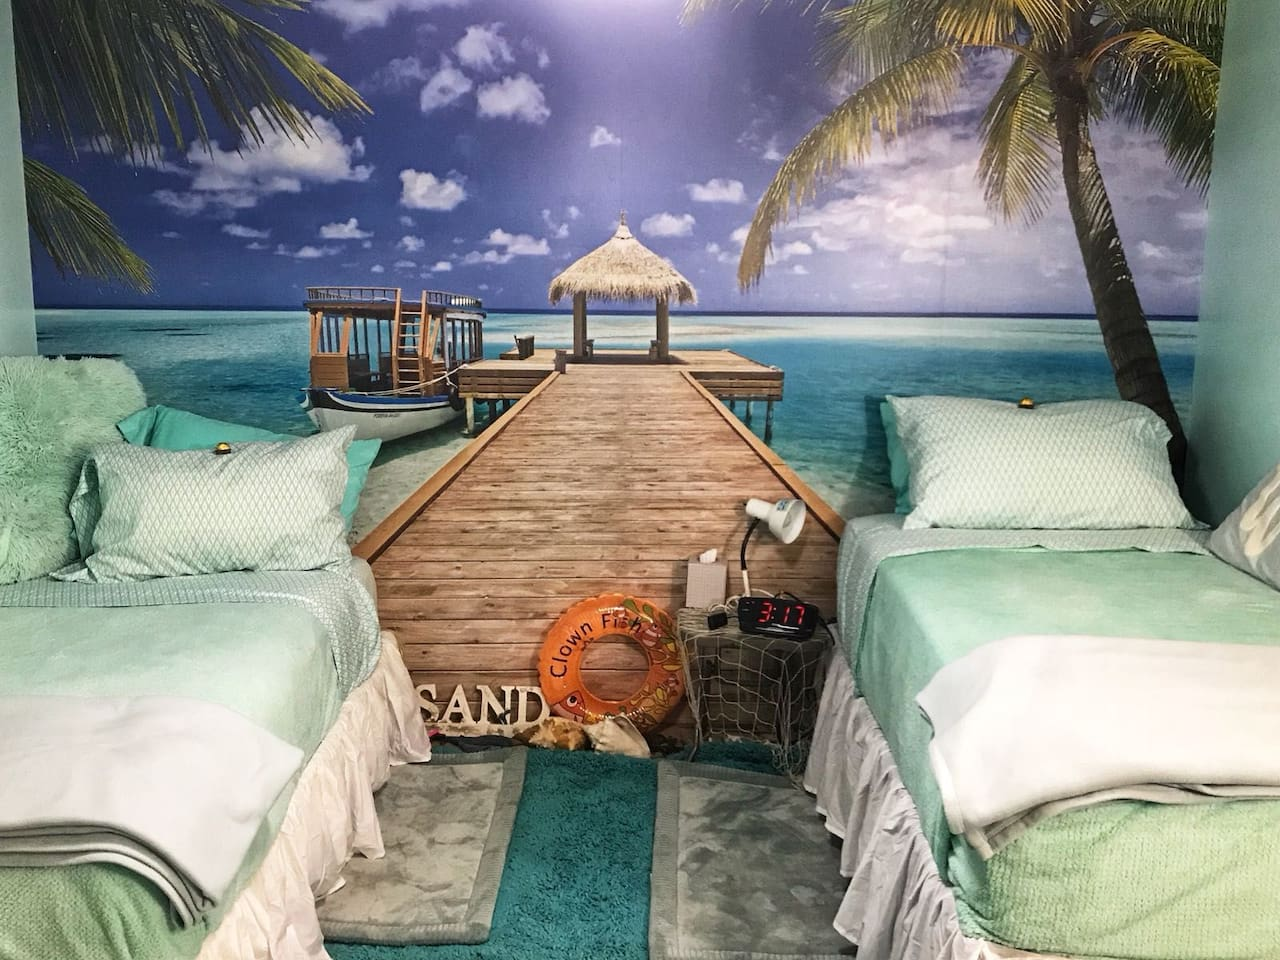 Paradise Found Room For Two!